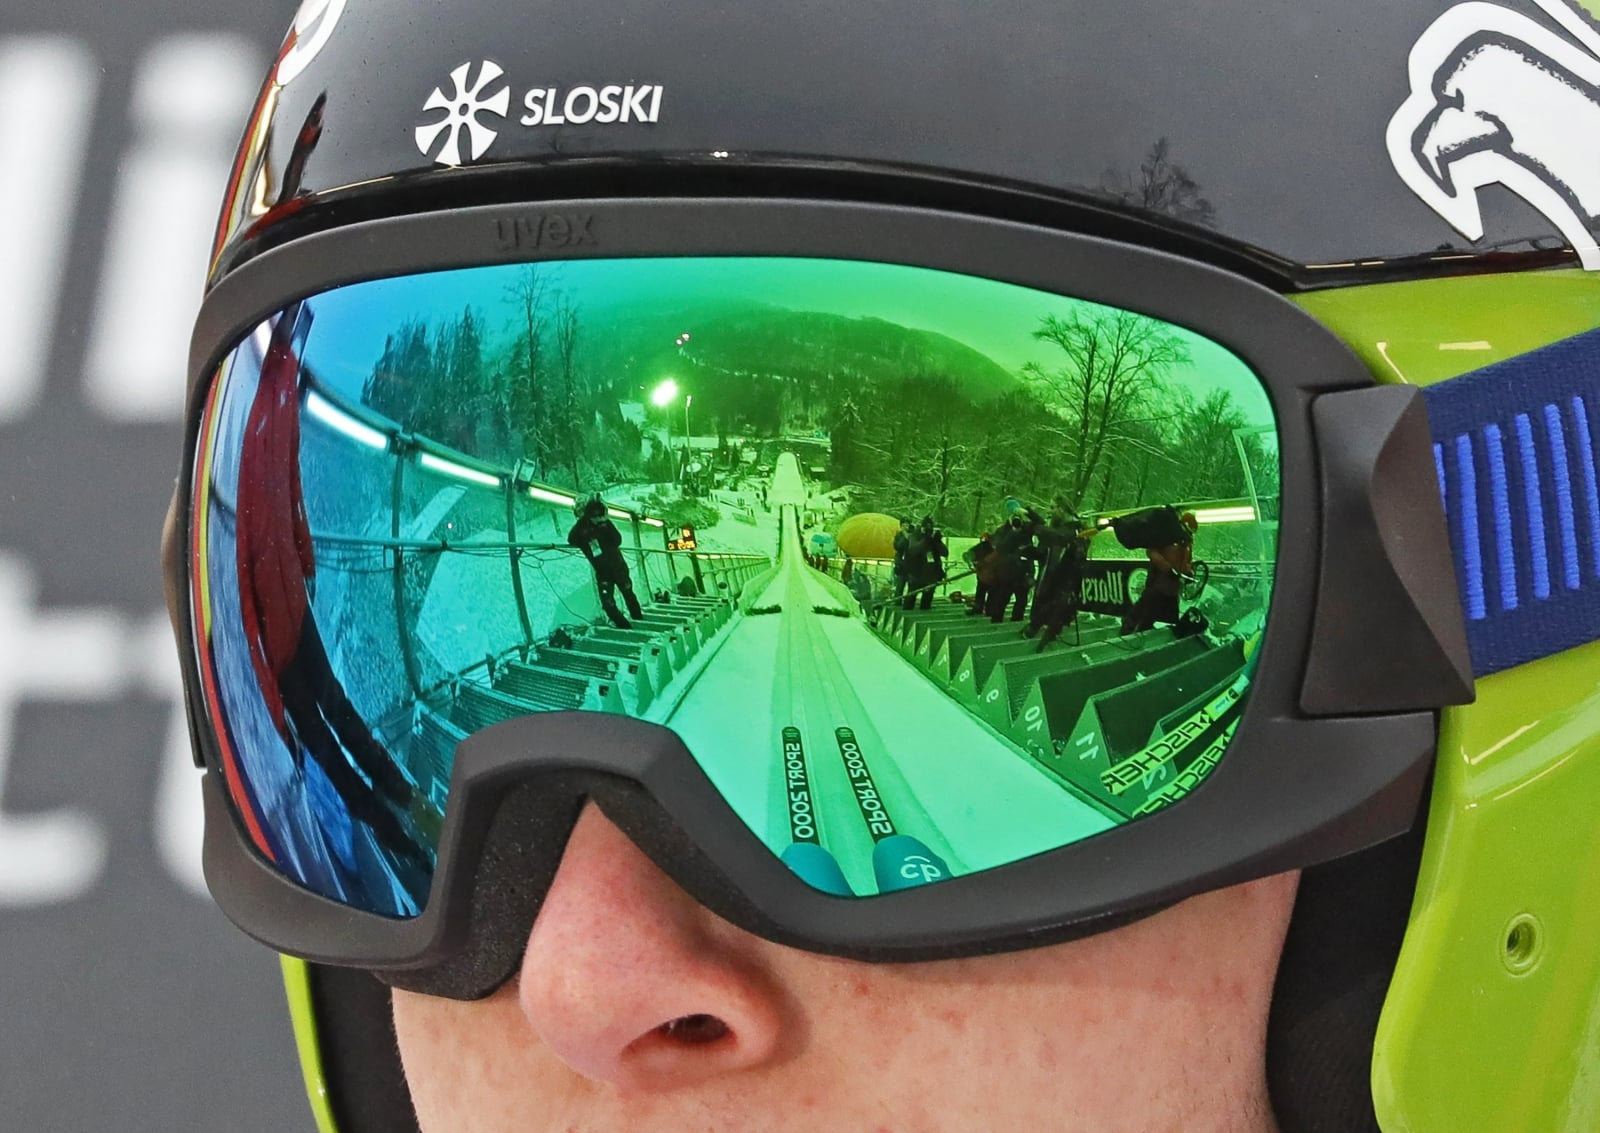 epa06492606 The Muehlenkopf ski jumping hill is reflected in the glasses of Ziga Jelar of Slovenia during a trial round of the FIS Ski Jumping World Cup in Willingen, Germany, 02 February 2018.  EPA/RONALD WITTEK Dostawca: PAP/EPA.